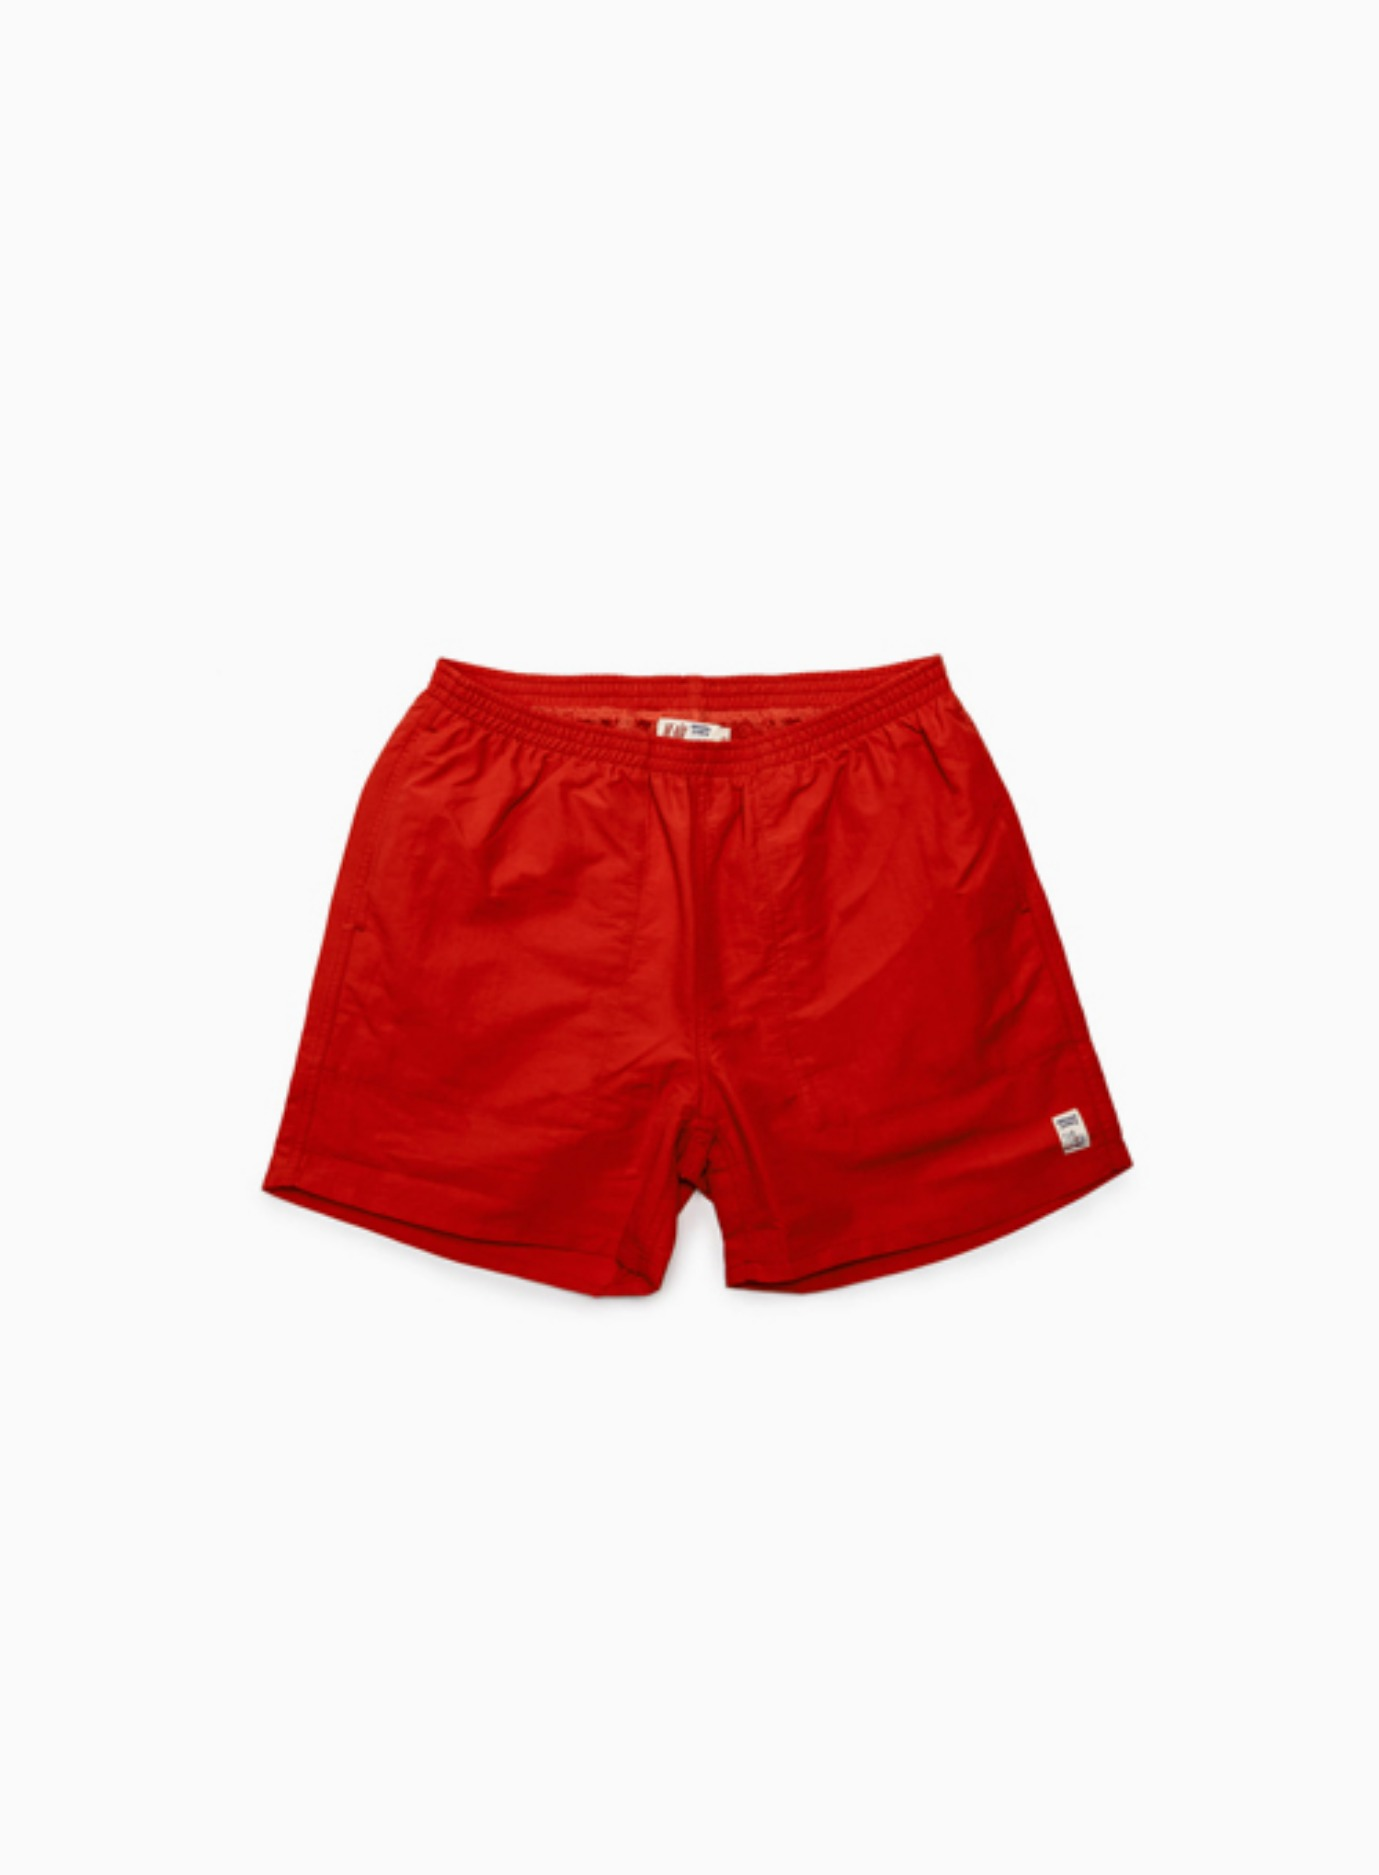 FATIGUE SHORTS (RED)